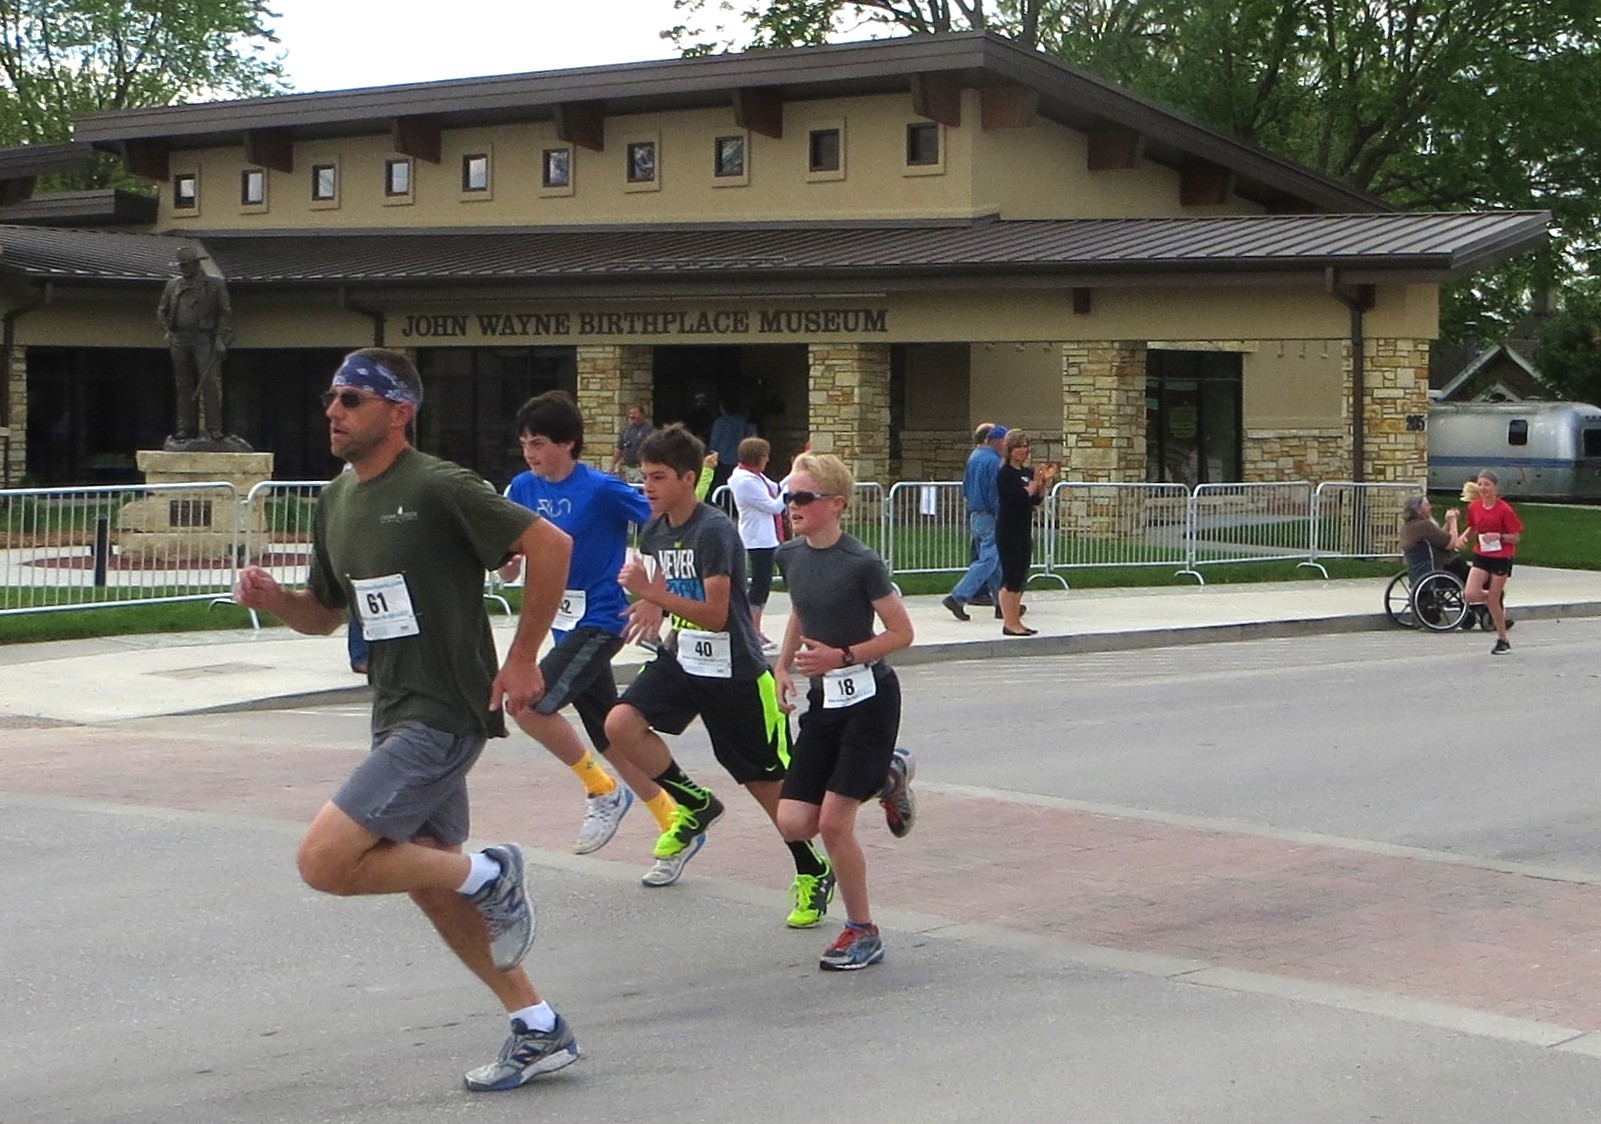 2015-05-23-John-Wayne-5K-runners-pass-the-Birthplace-Museum